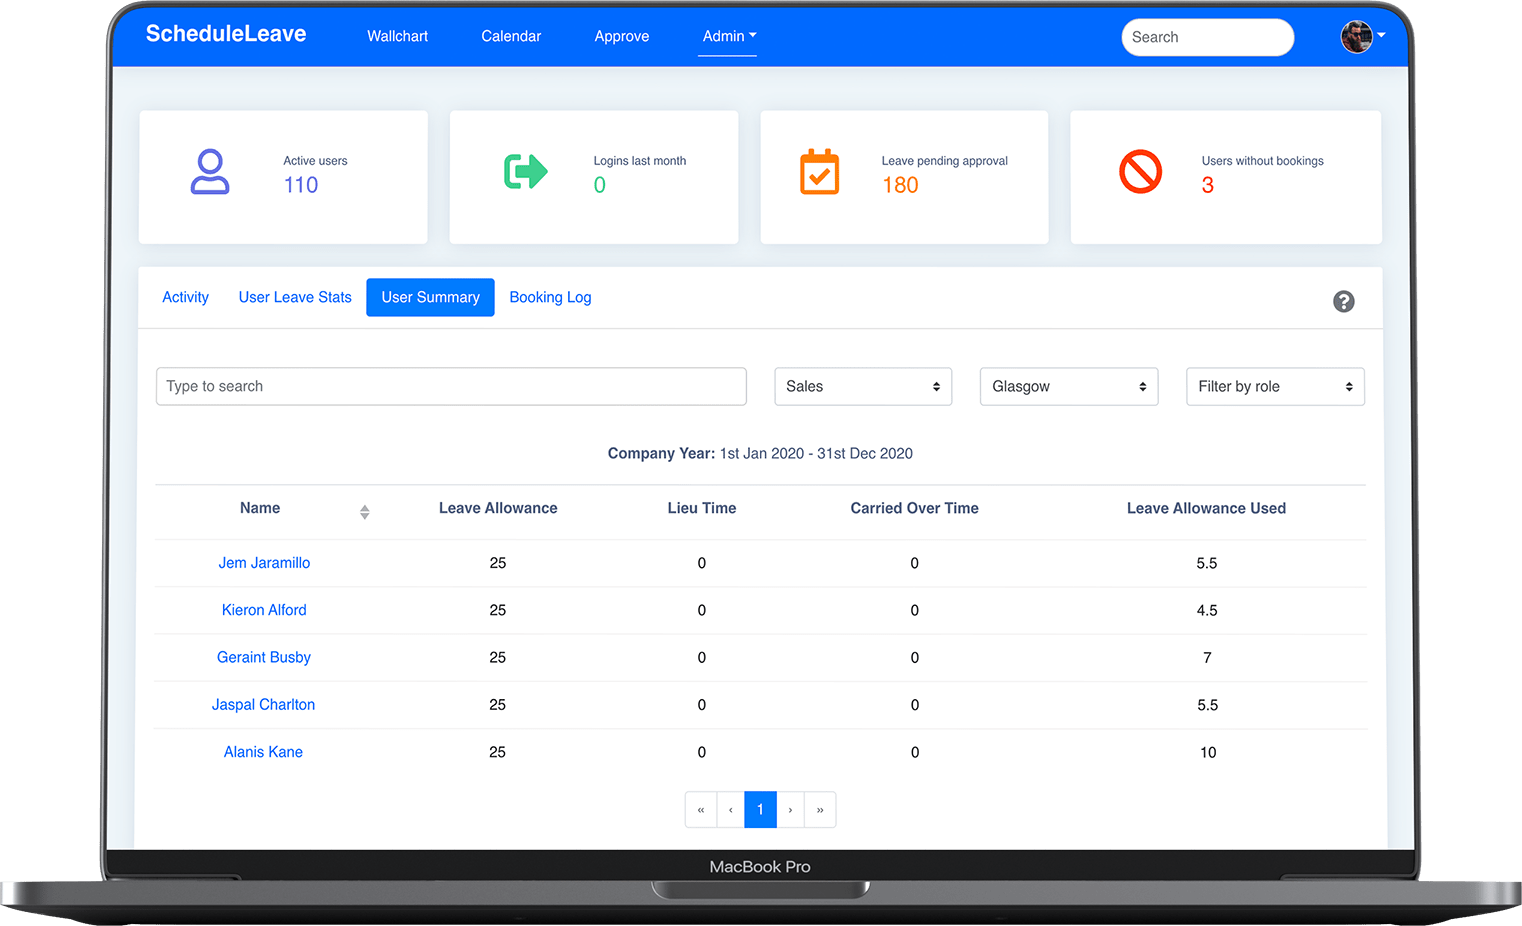 ScheduleLeave - Advanced reporting